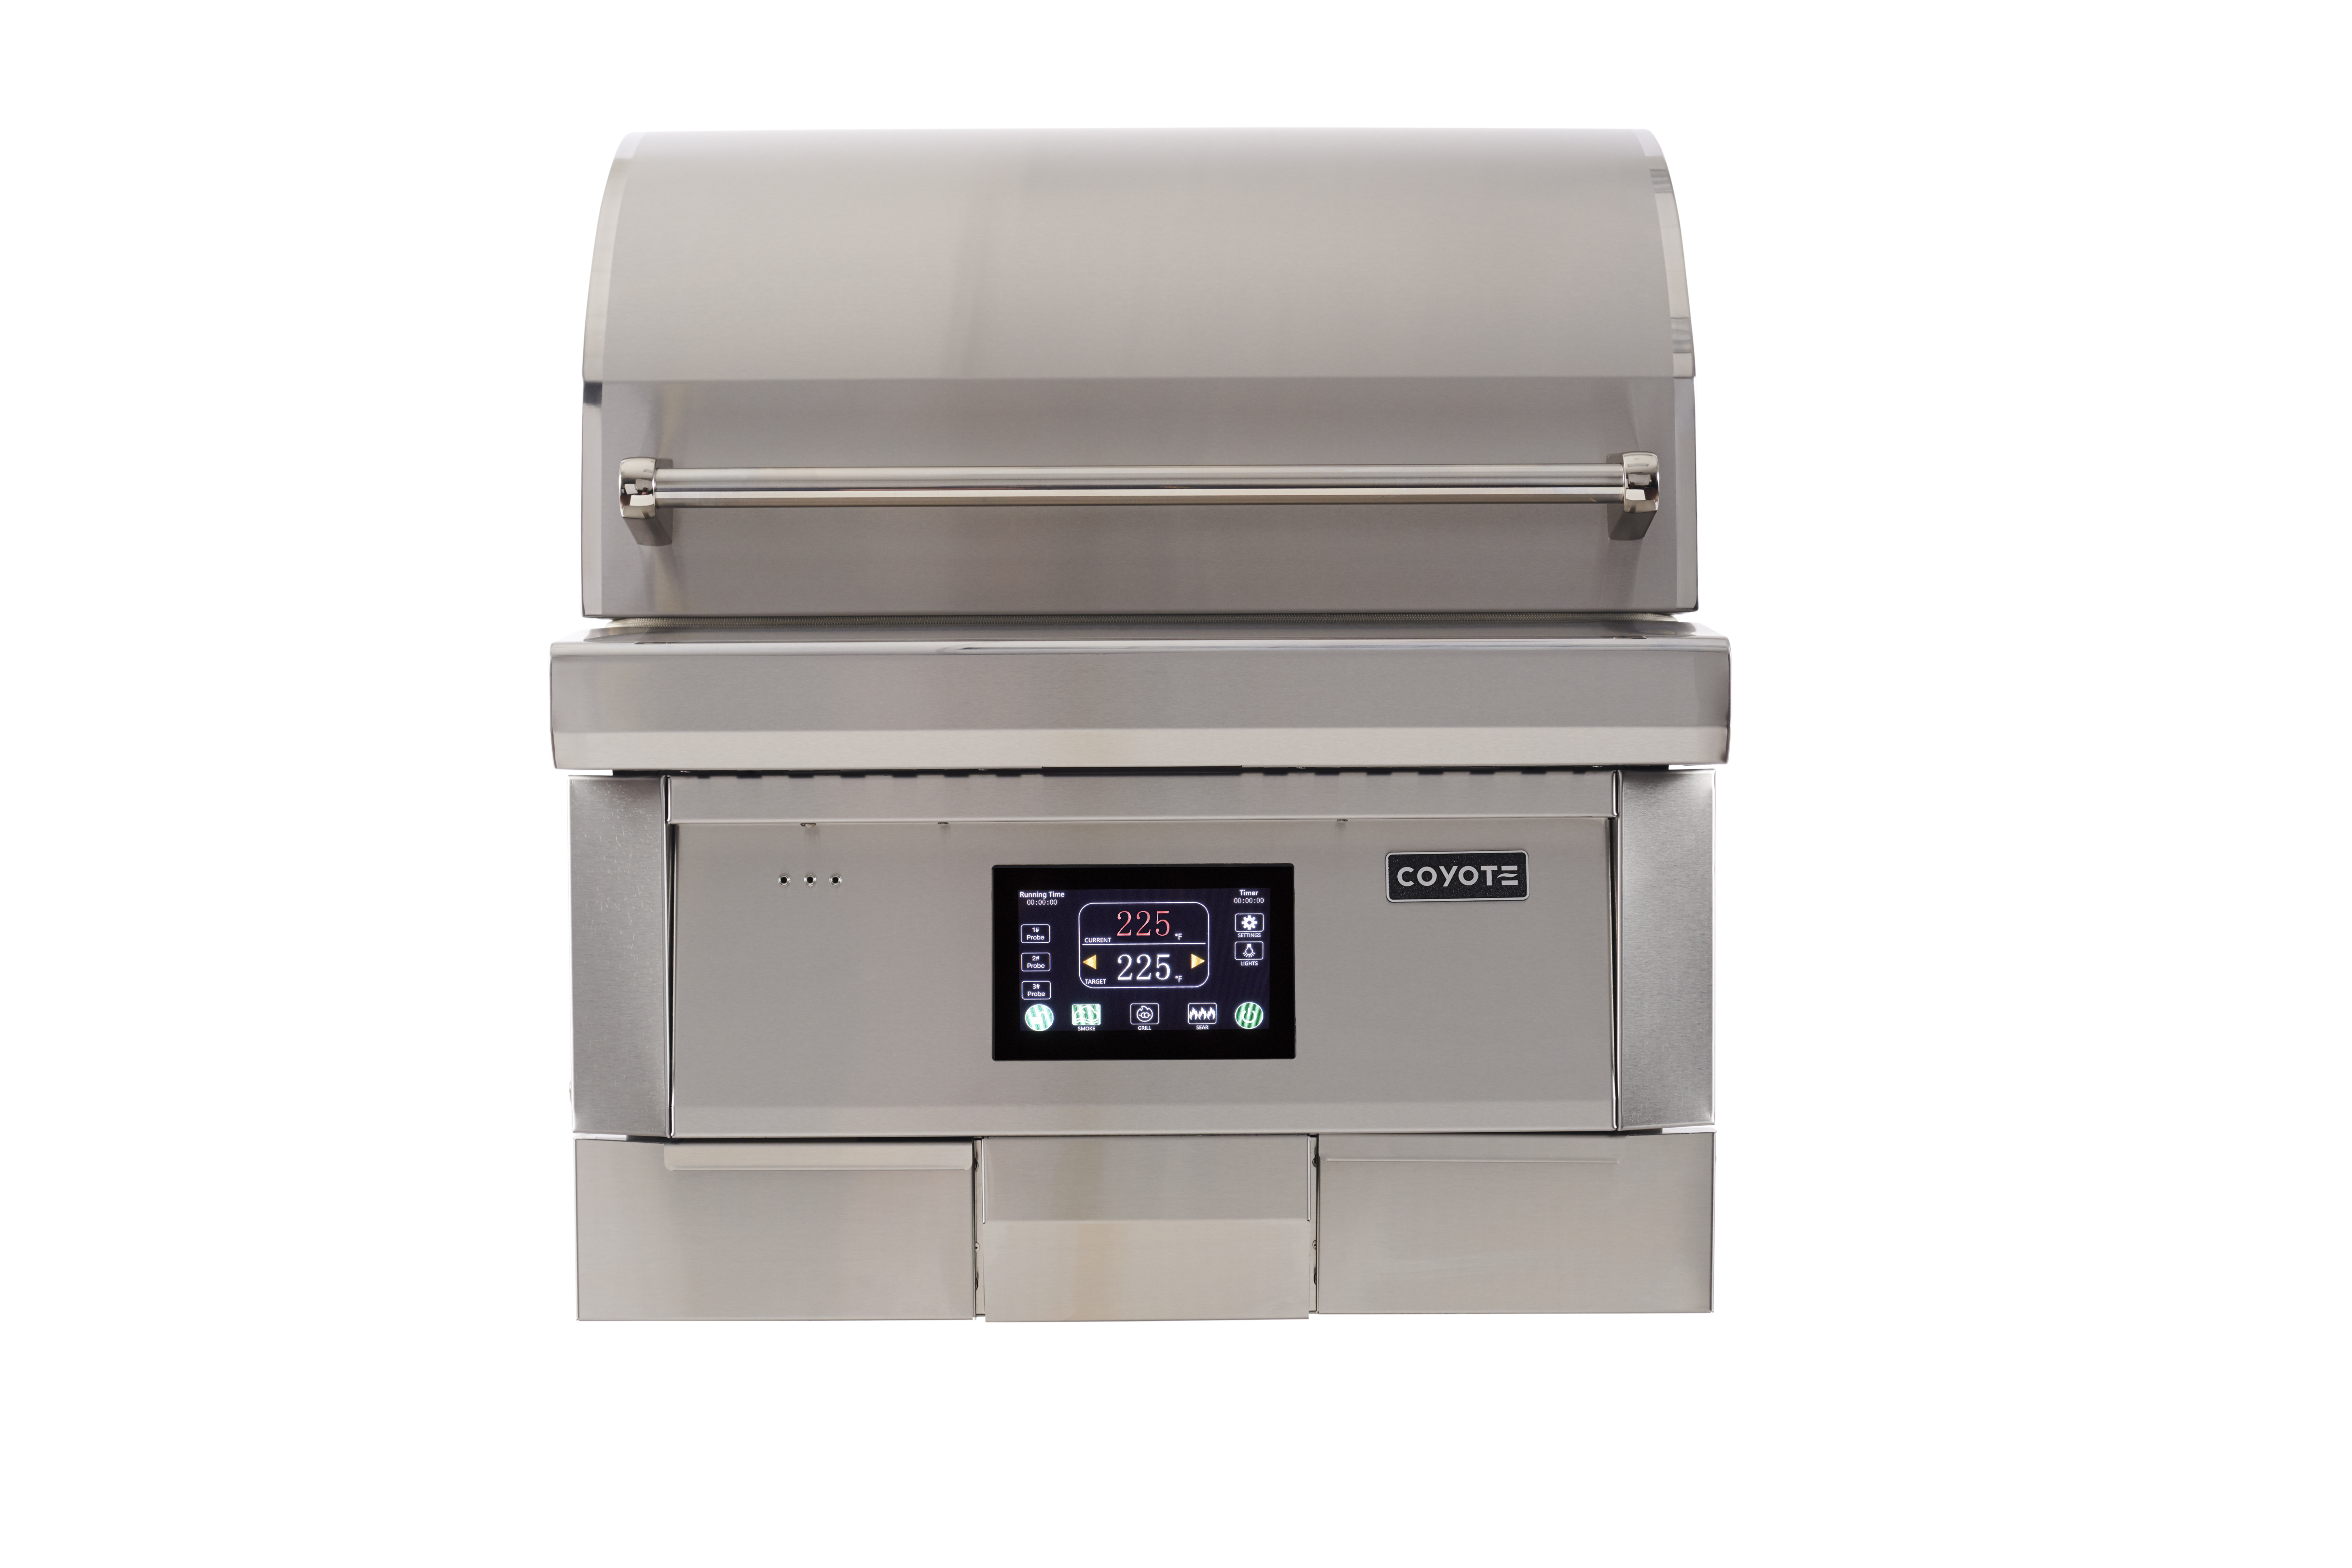 Coyote BBQ C1P28 in Stainless Steel color showcased by Corbeil Electro Store